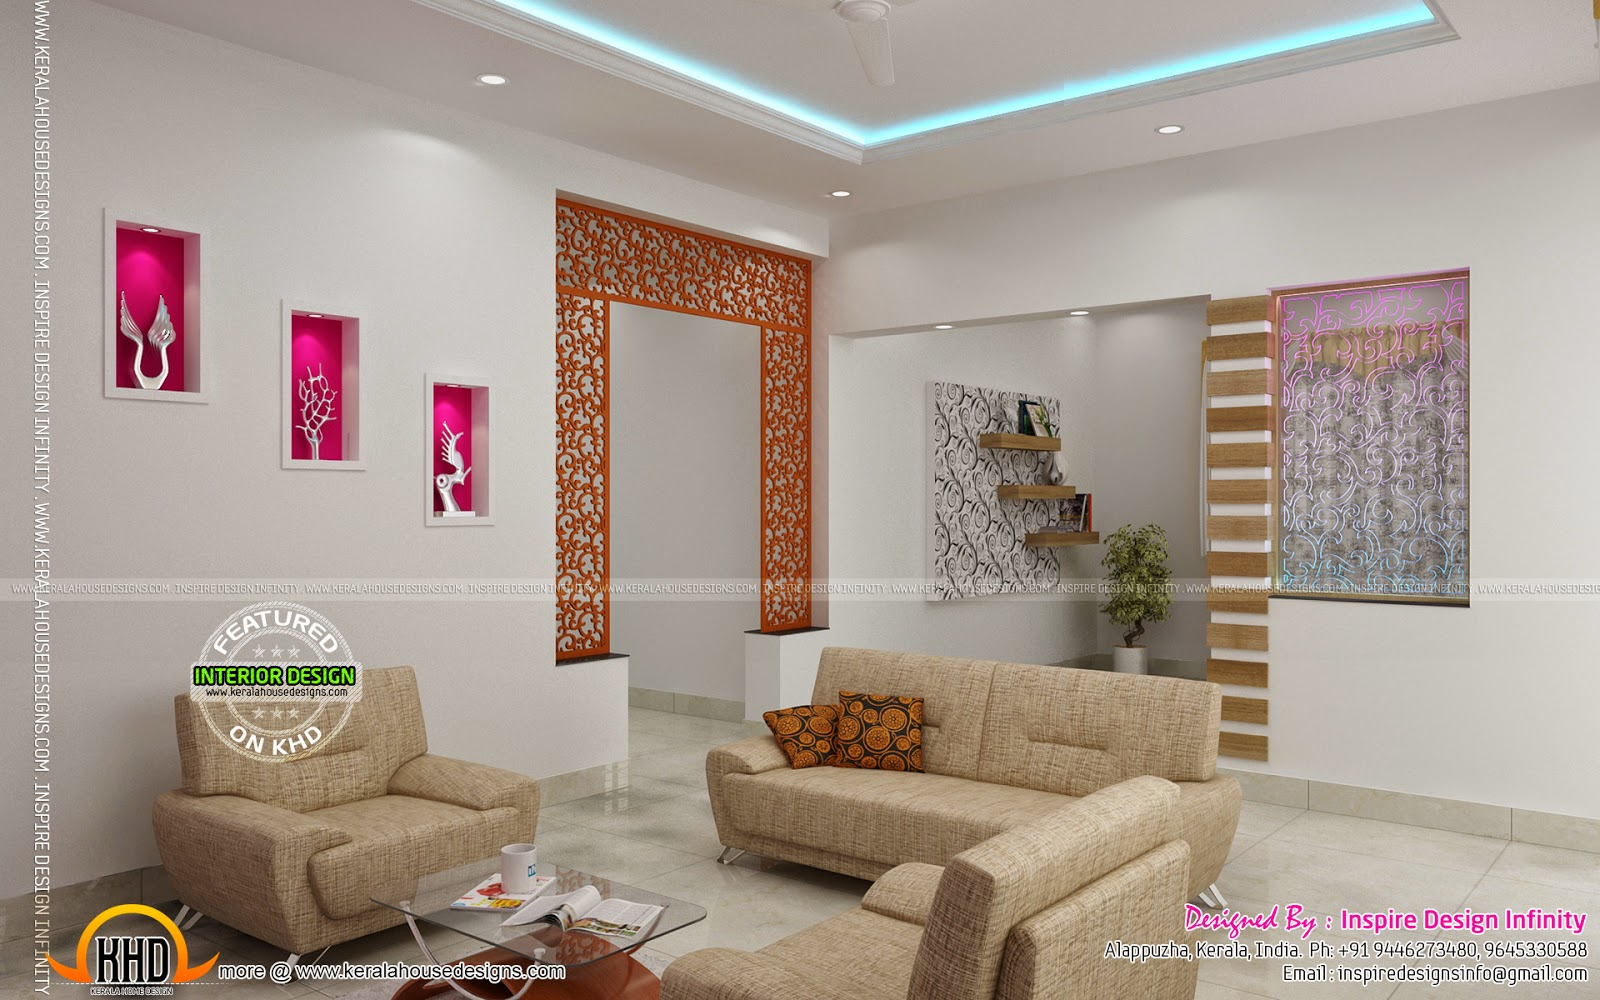 interior designs by inspire design infinity kerala home design and floor plans